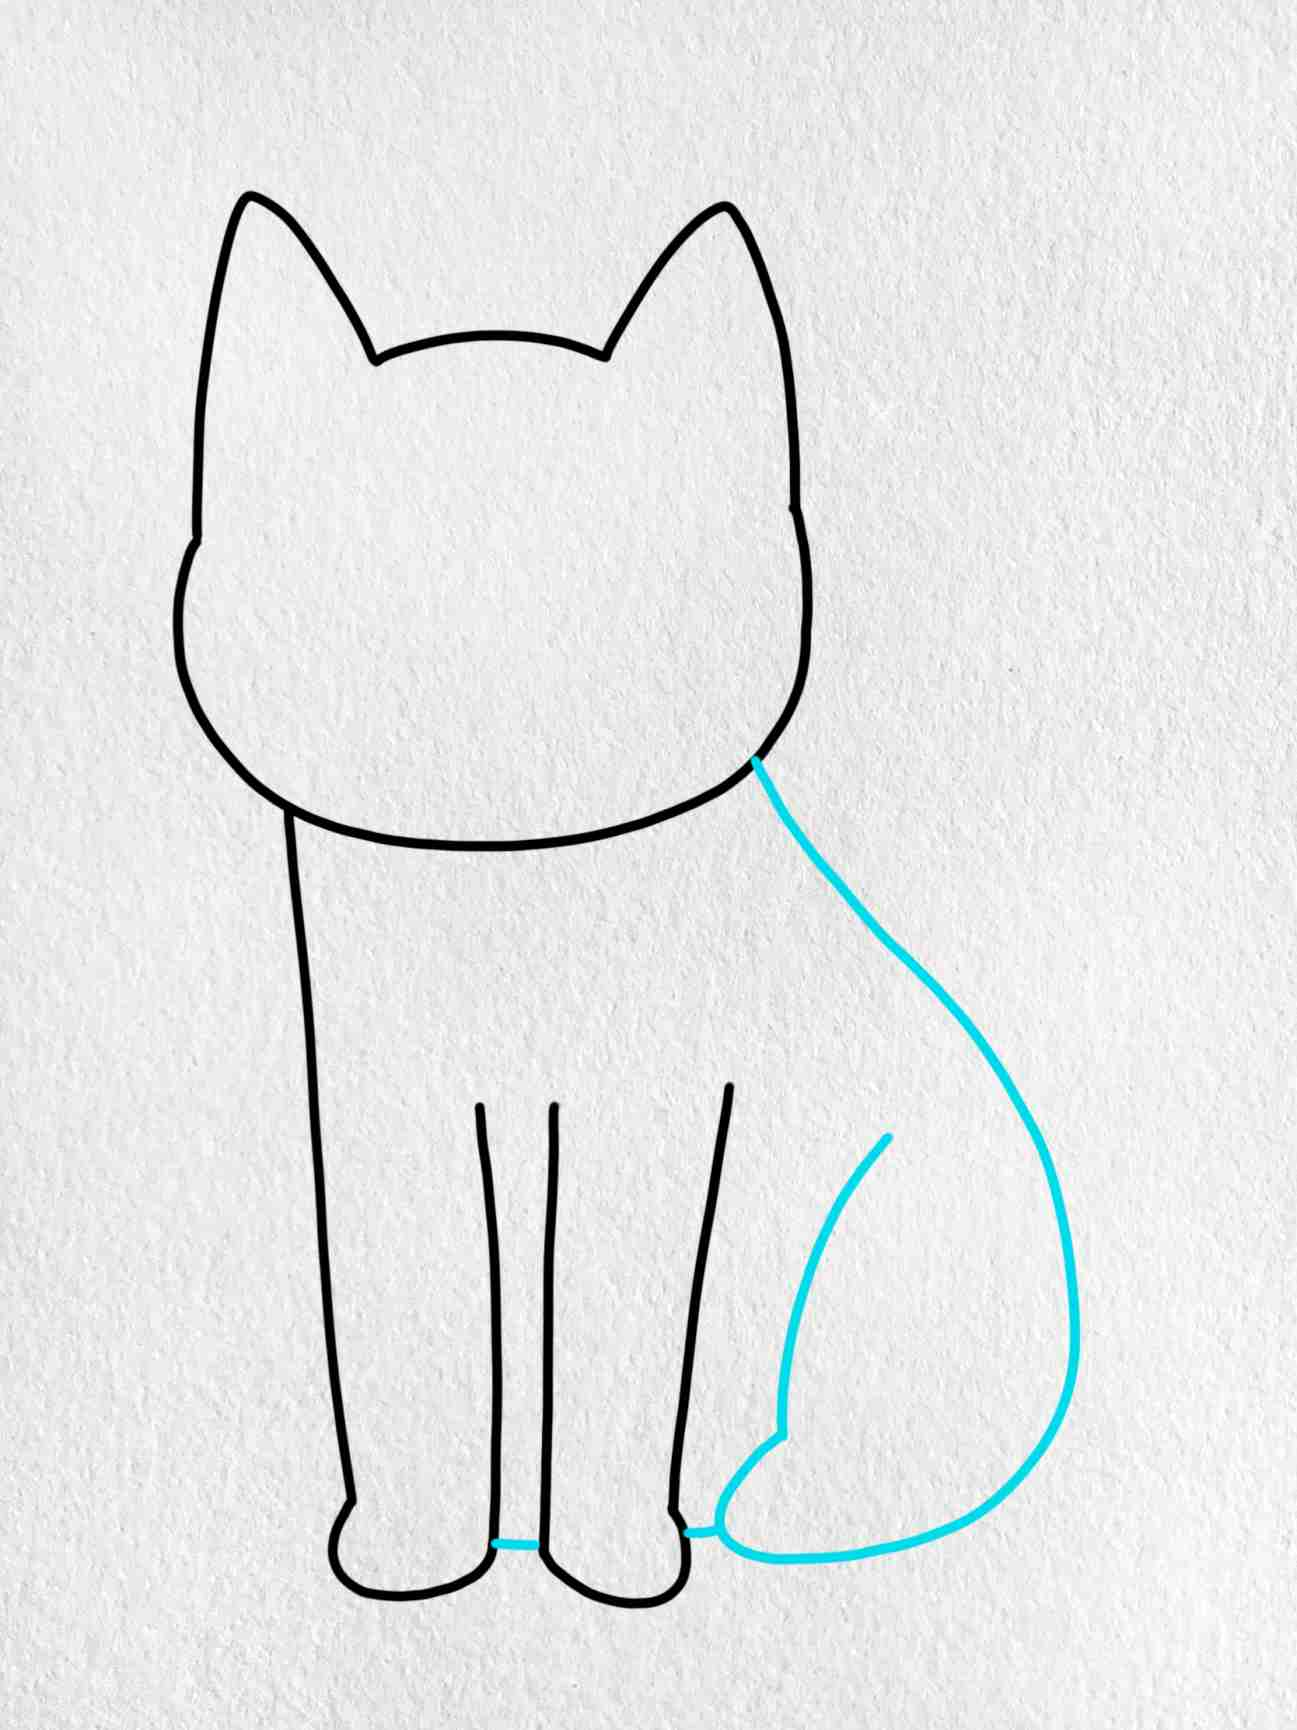 Cat Drawing For Kids: Step 3